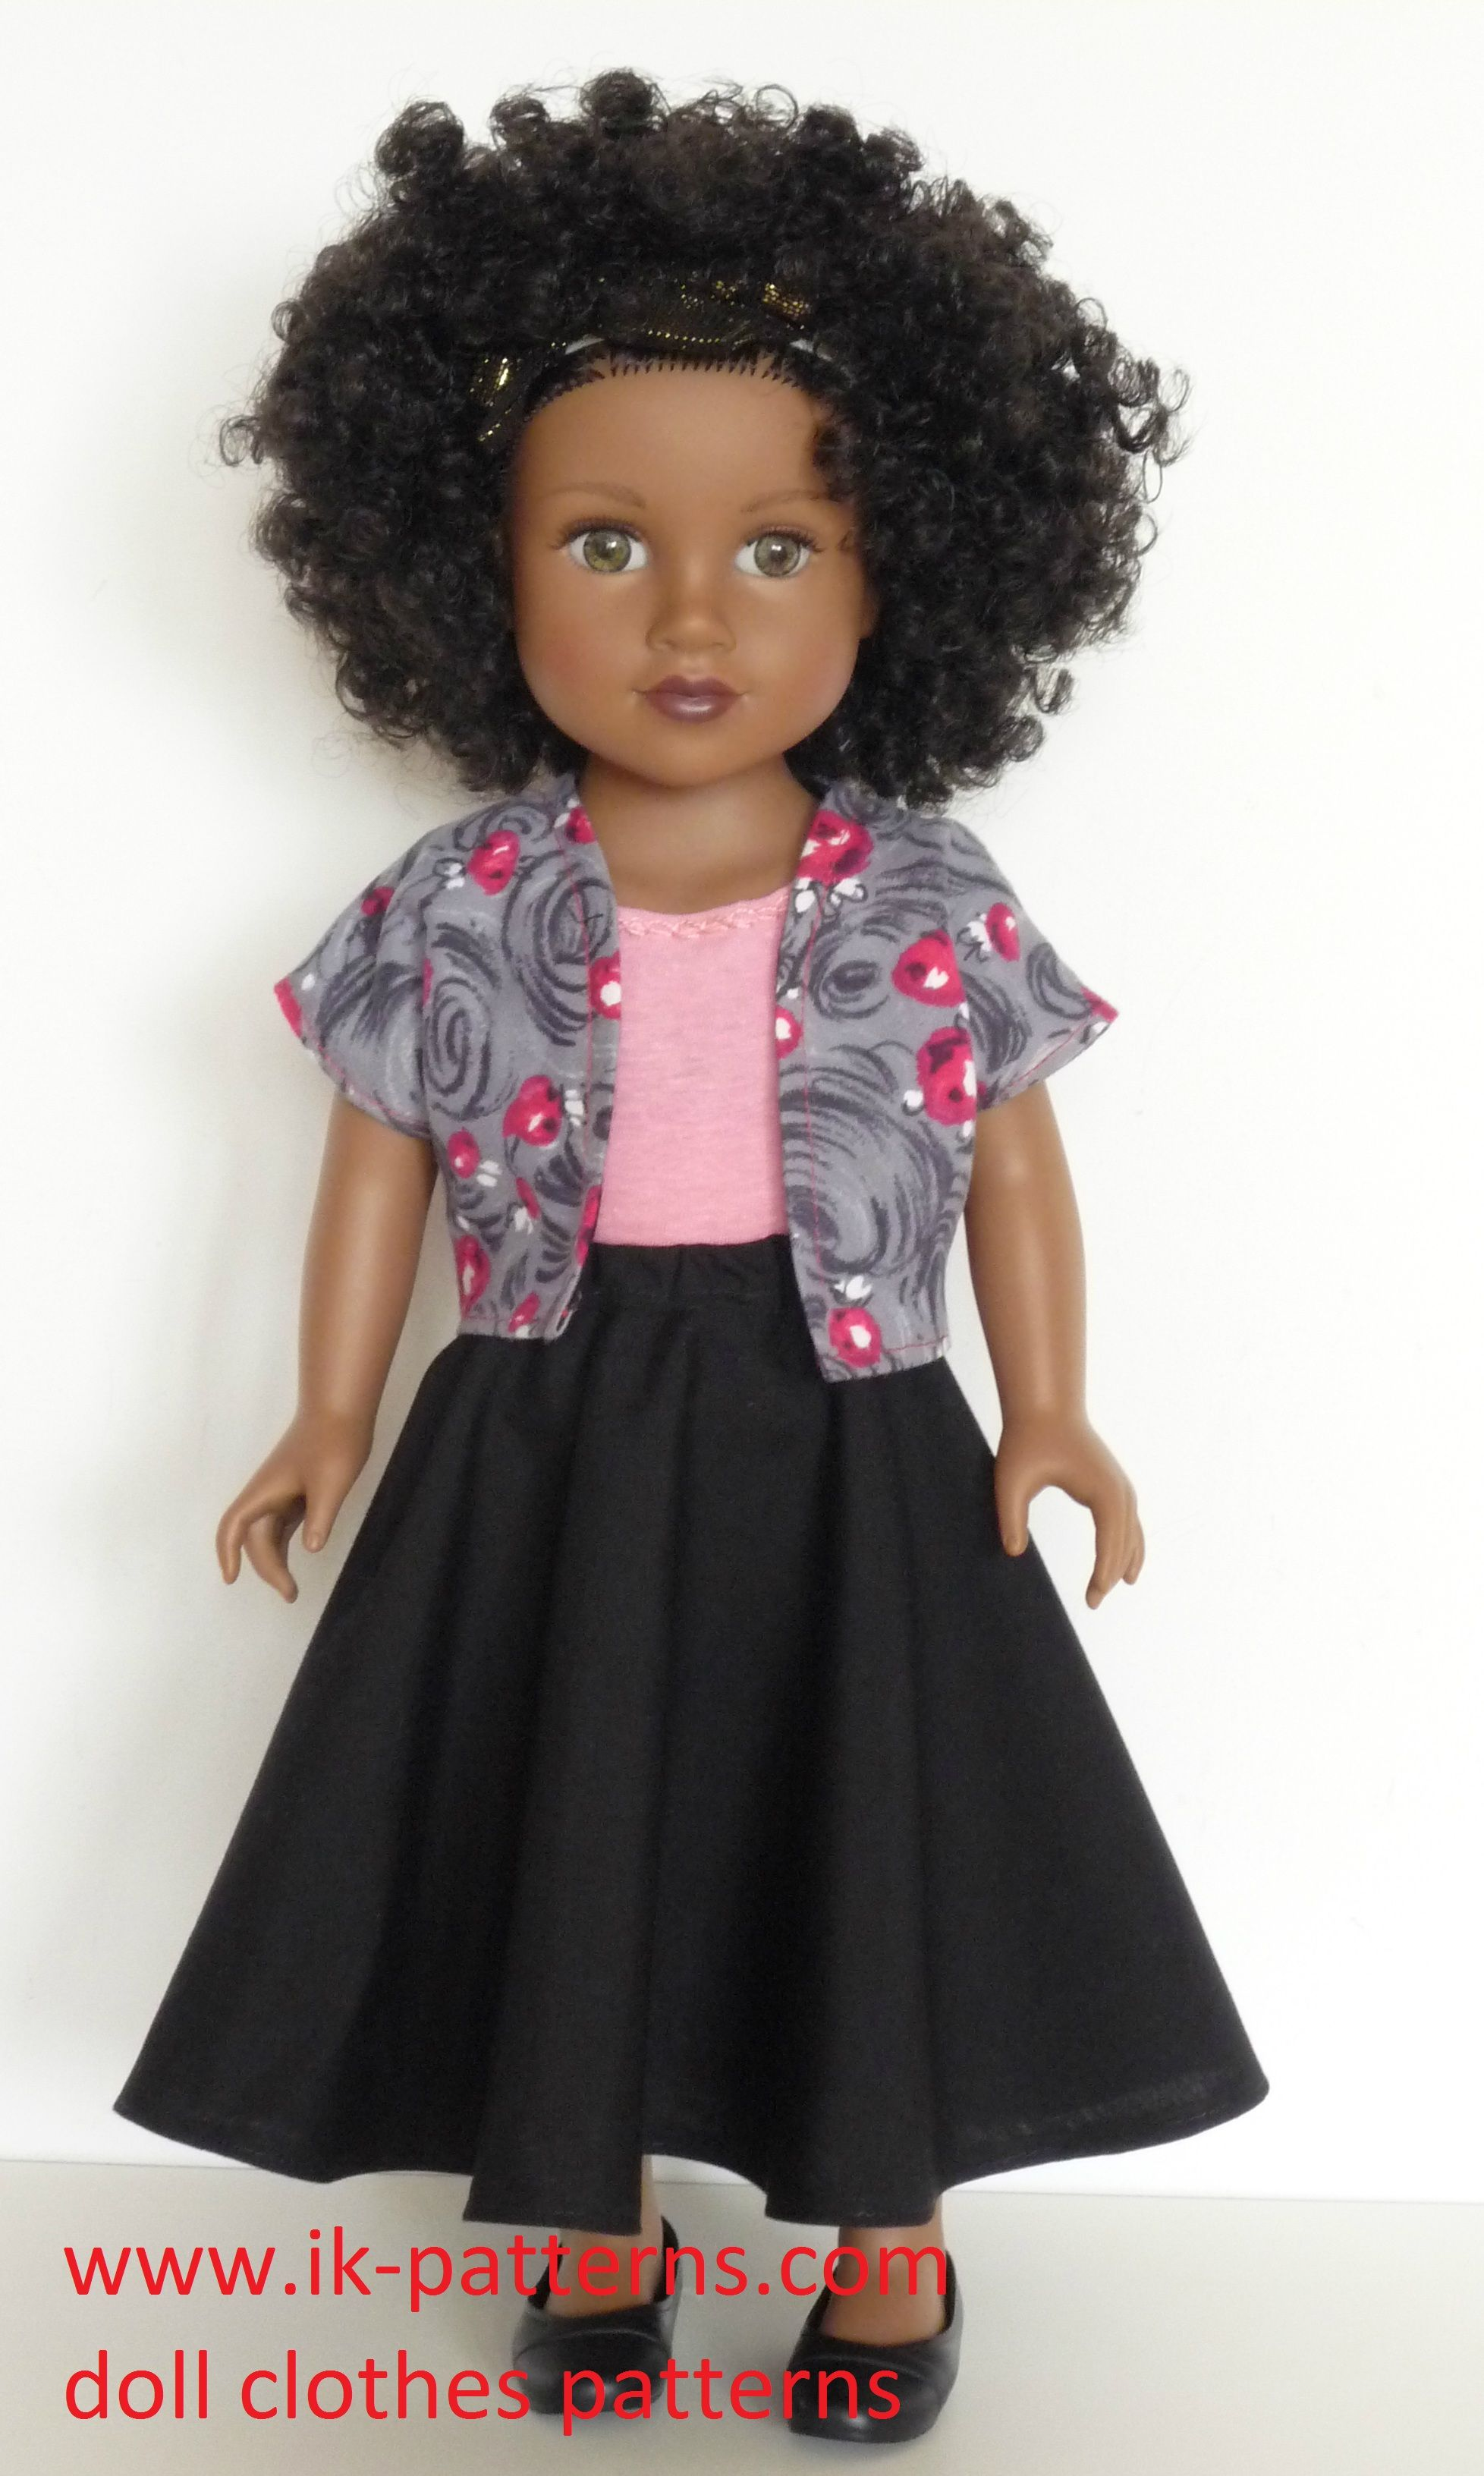 Skater Skirt with Jacket Patttern for Journey Girls doll. 18 inch ...